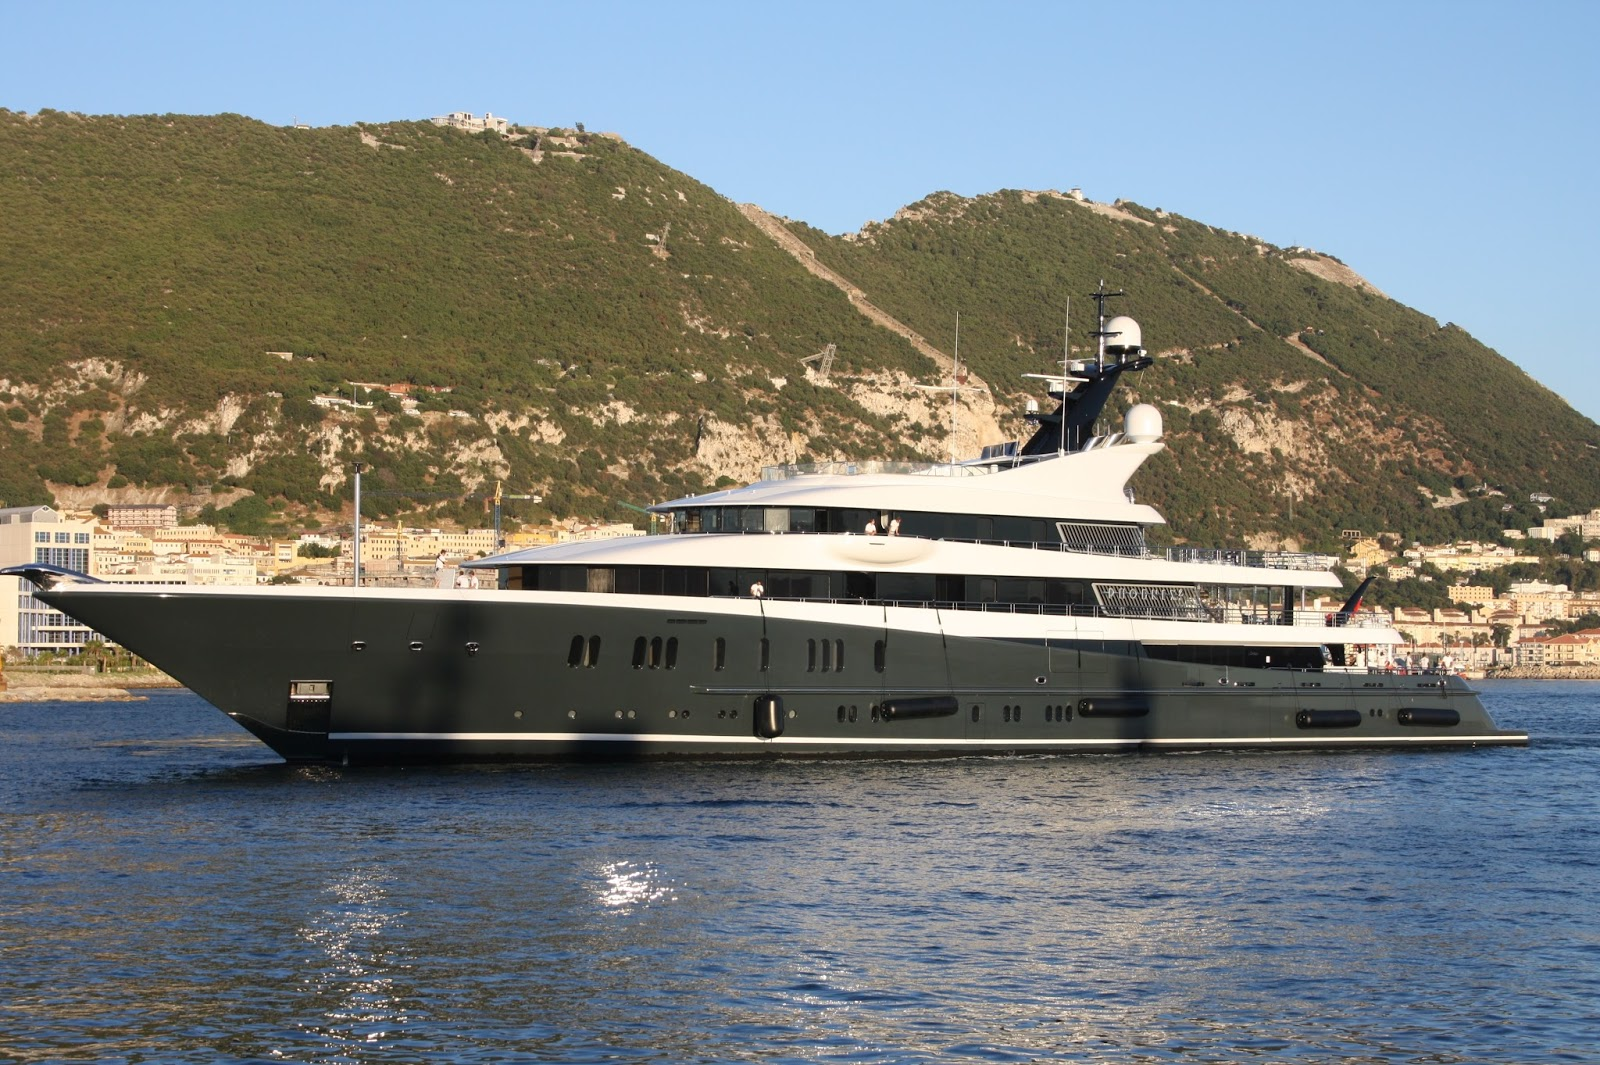 Megayacht PHOENIX 2 Port Side